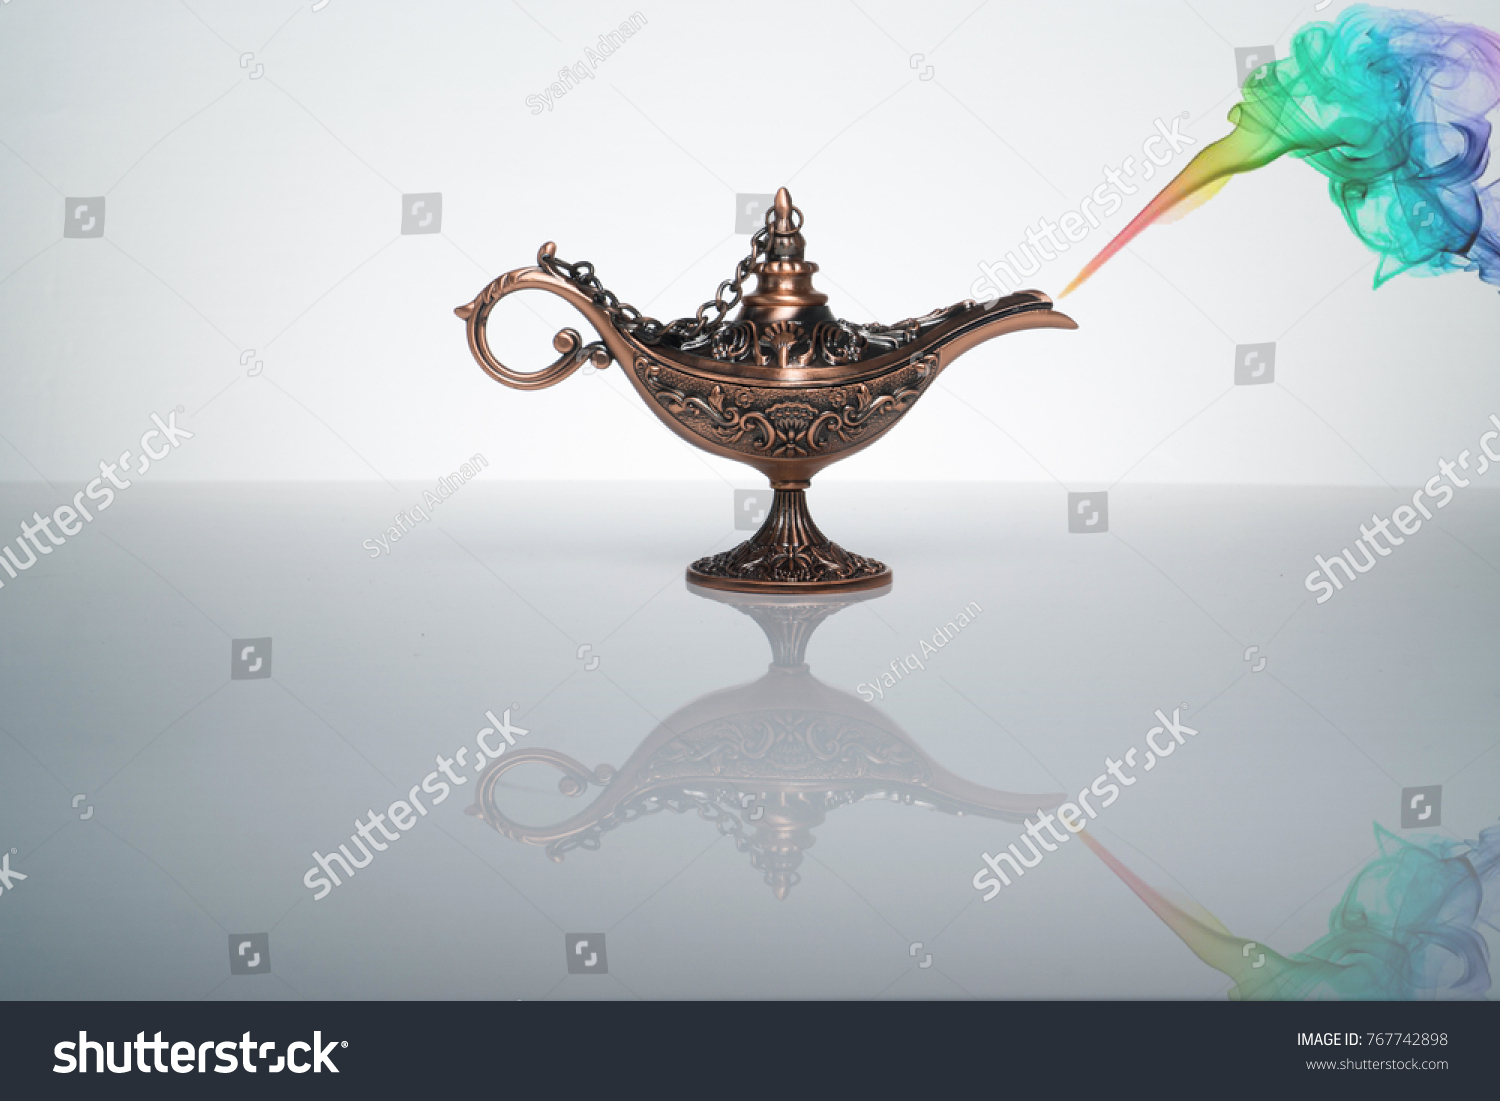 Magic Lamp Smoke Art On White Stock Photo 767742898 - Shutterstock for Magic Lamp With Smoke  545xkb